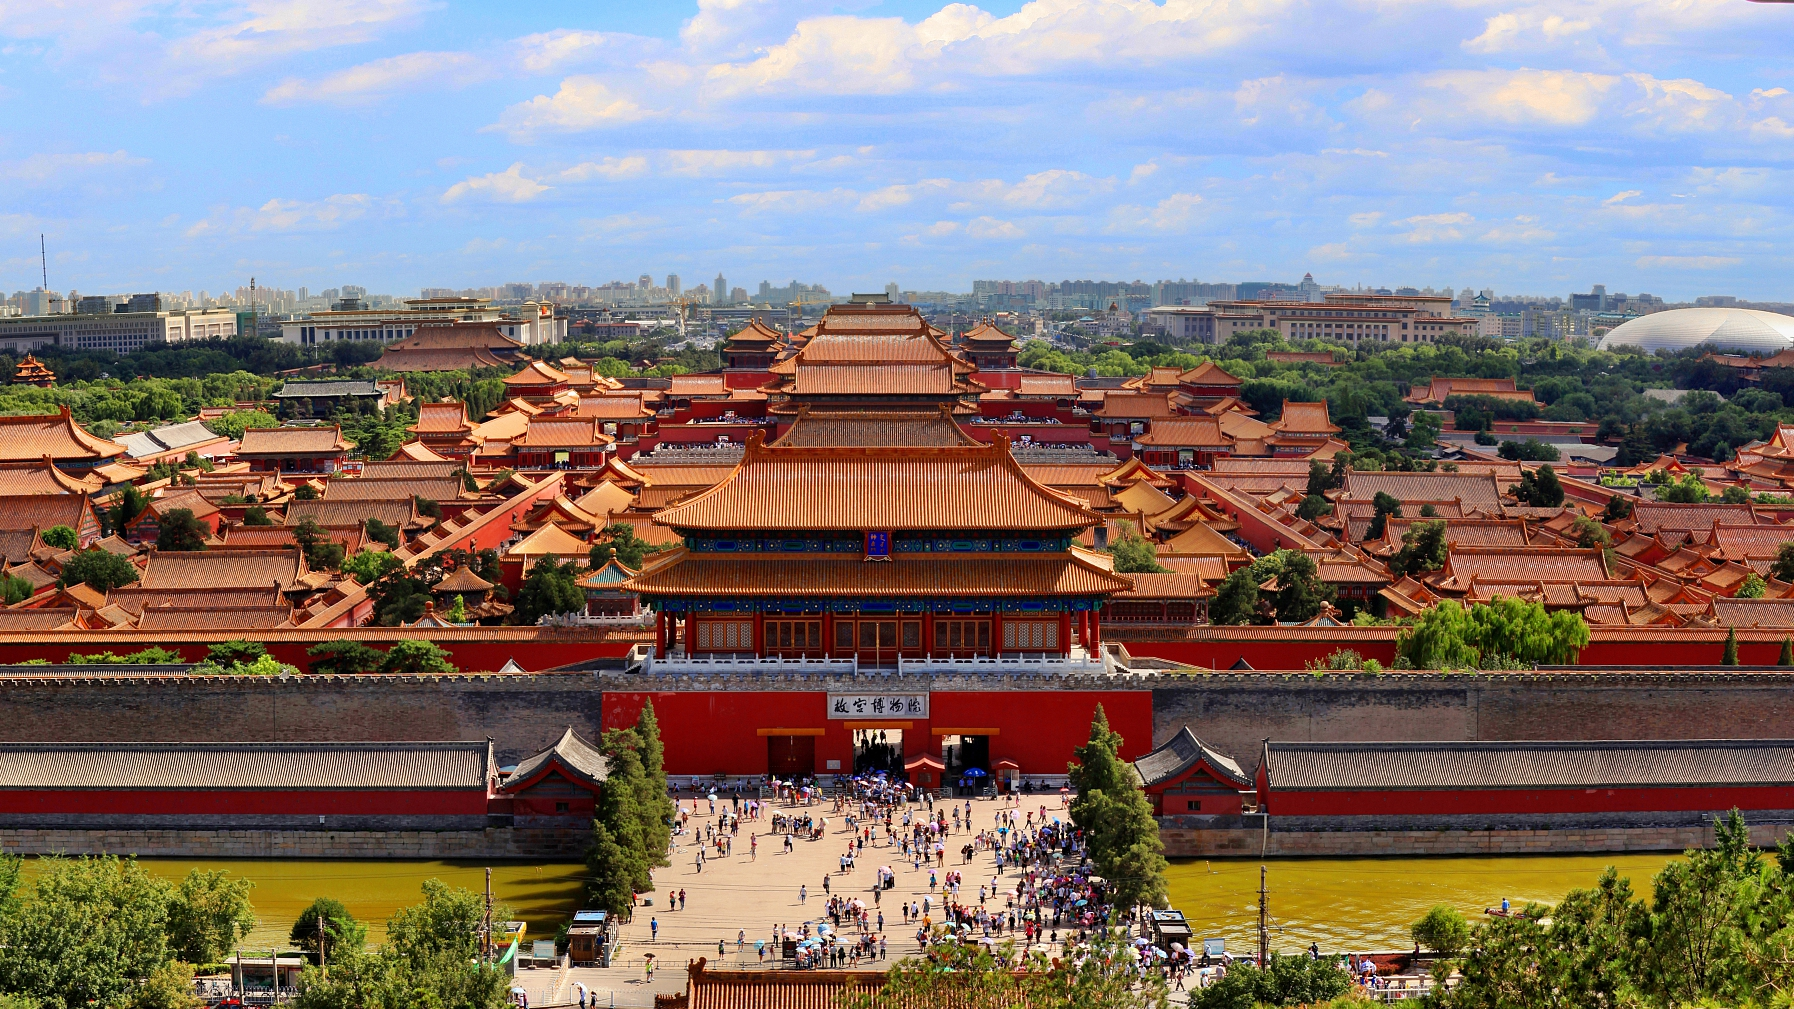 Chinese authority calls for high-quality development of 'all-for-one' tourism